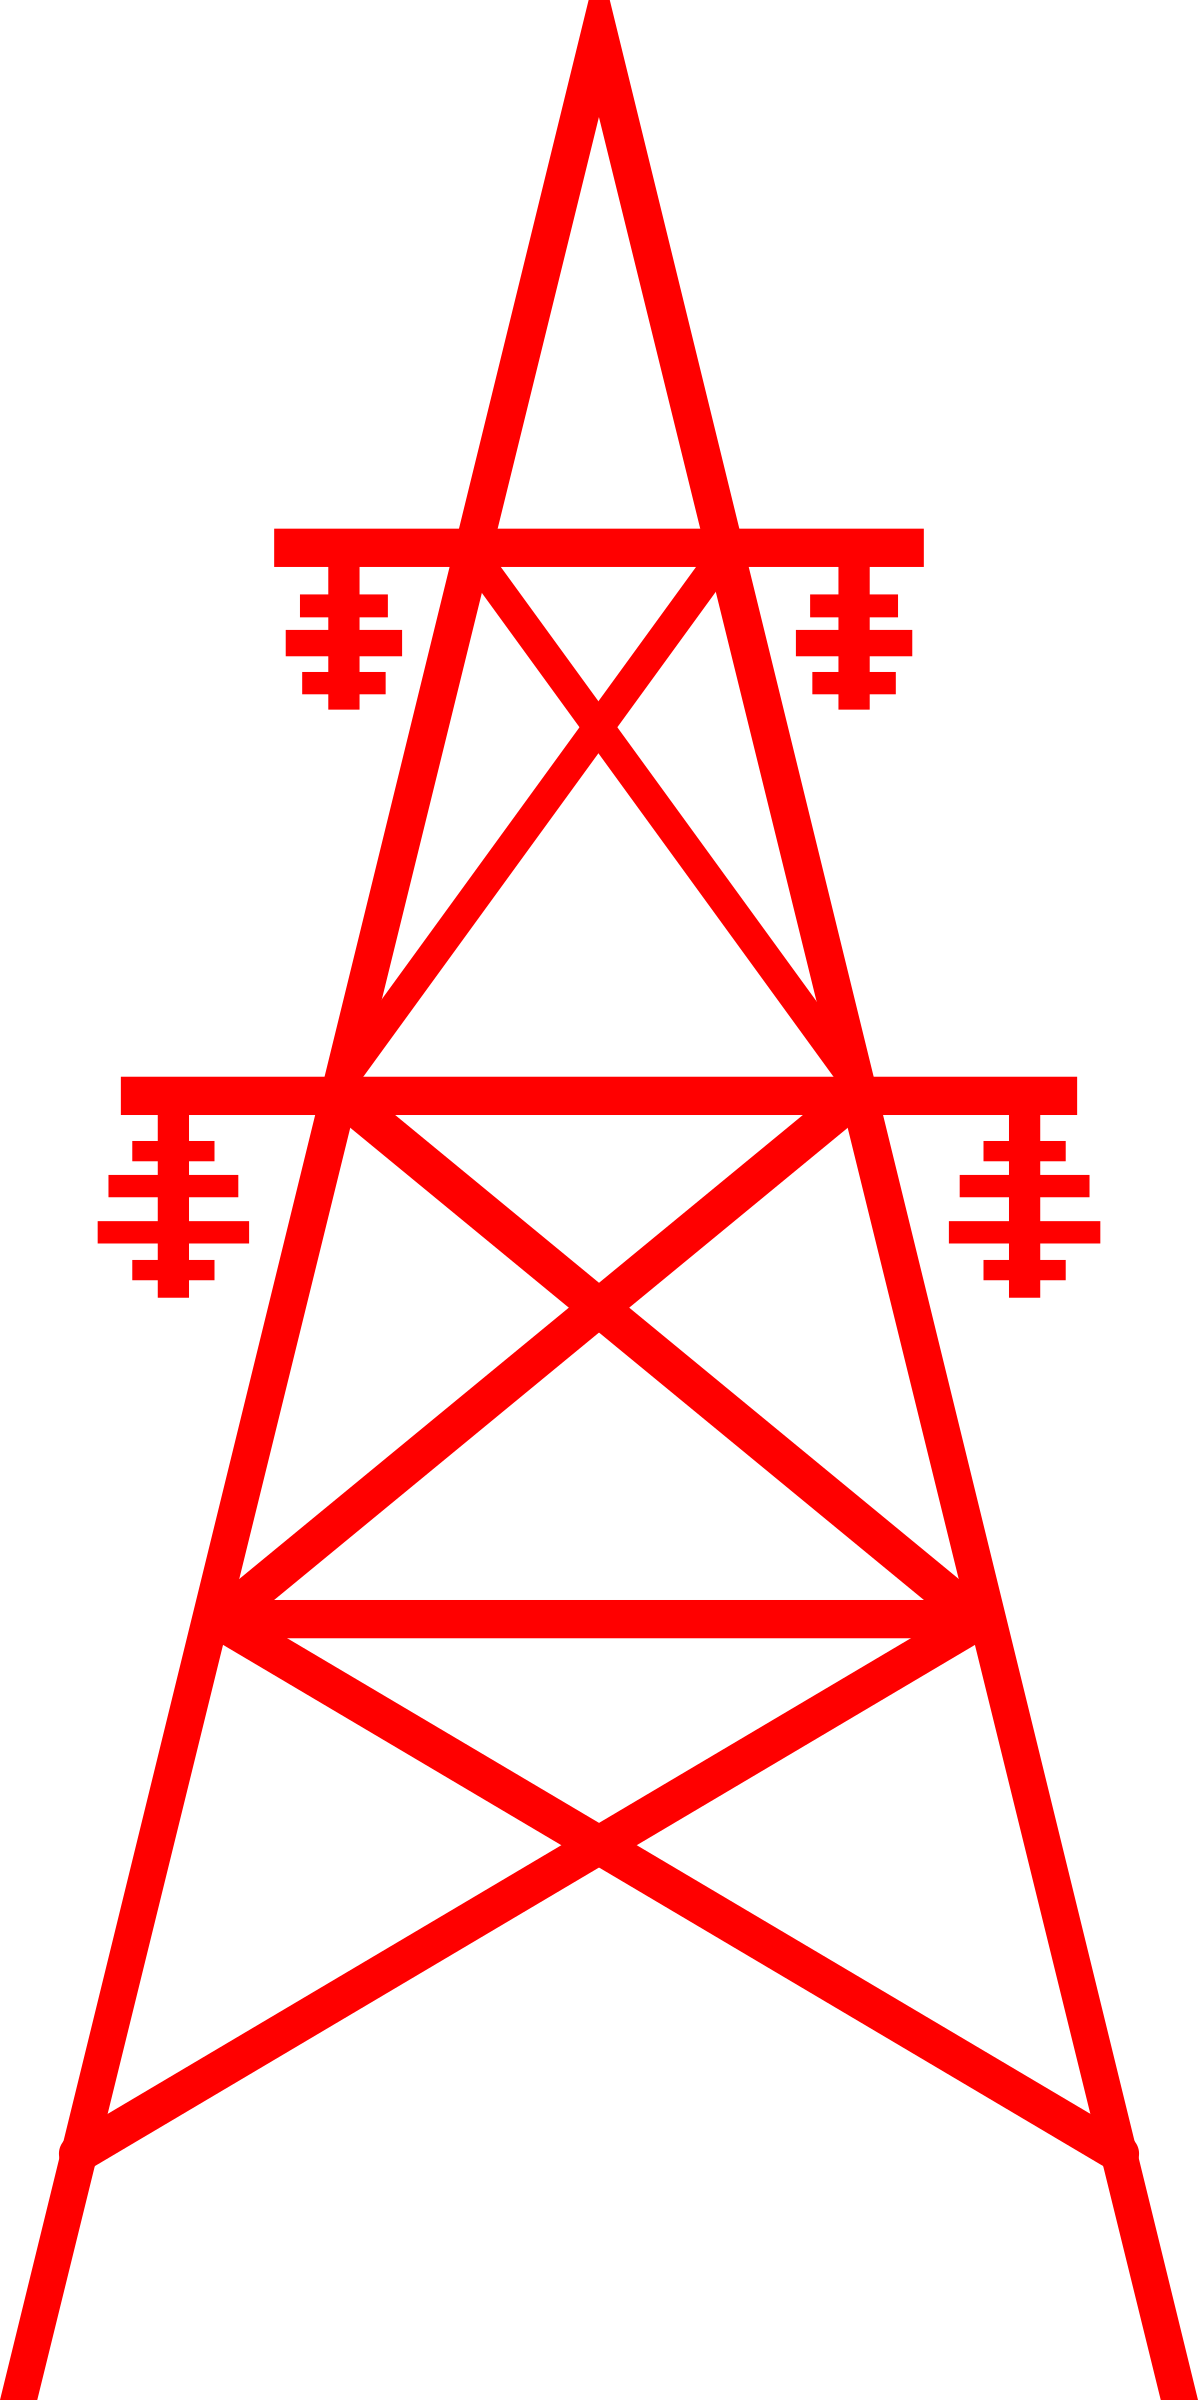 Electric Tower Clipart Png | www.imgkid.com - The Image ...